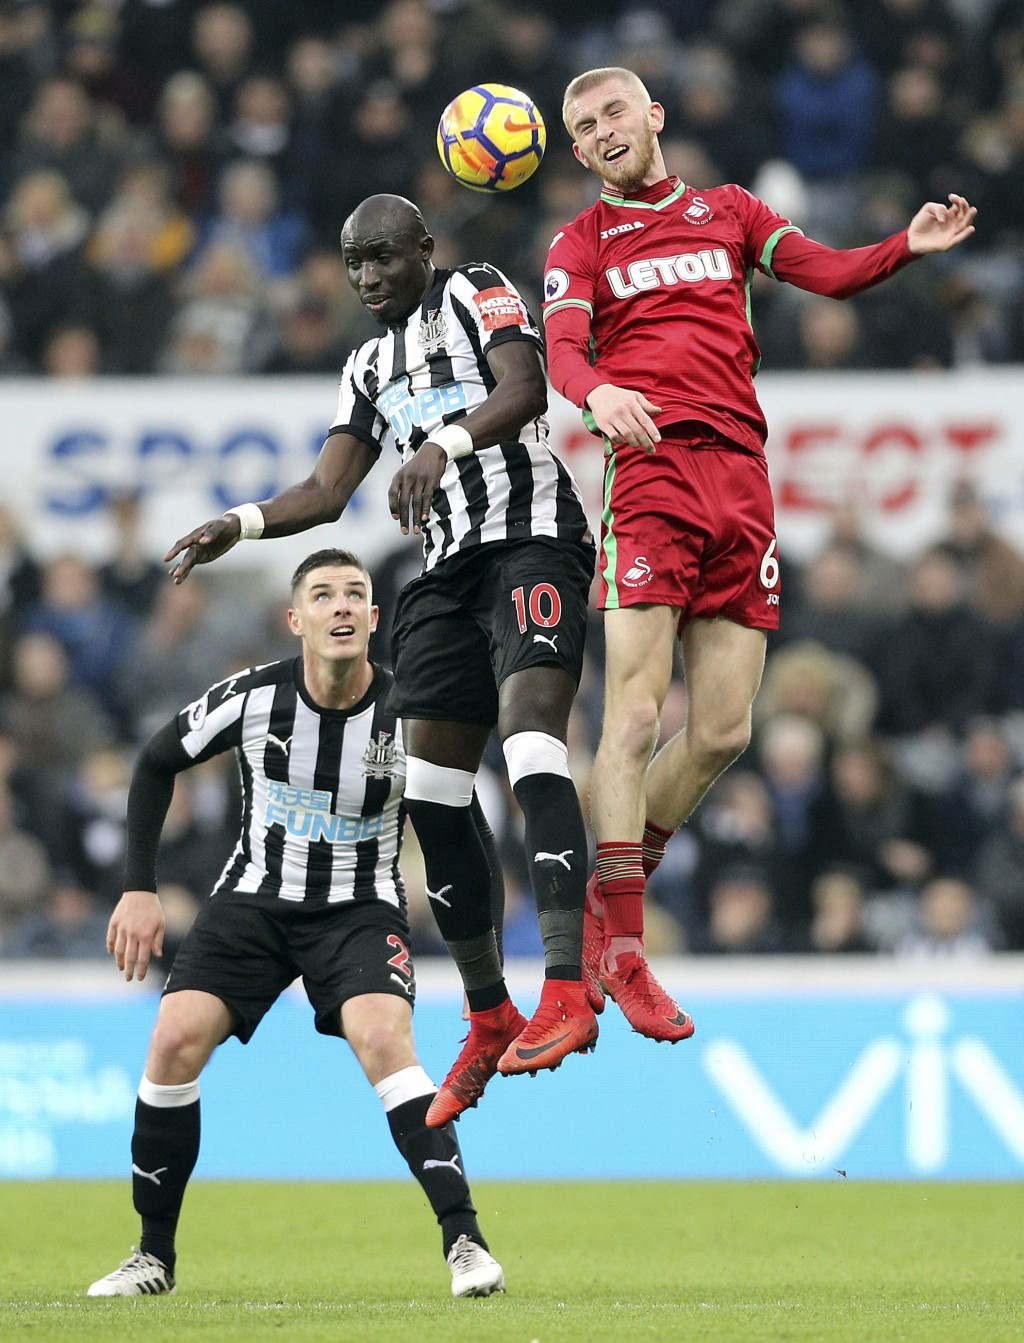 Newcastle United's Mohamed Diame, center, and Swansea City's Oliver McBurnie battle for a header during the English Premier League soccer match agains